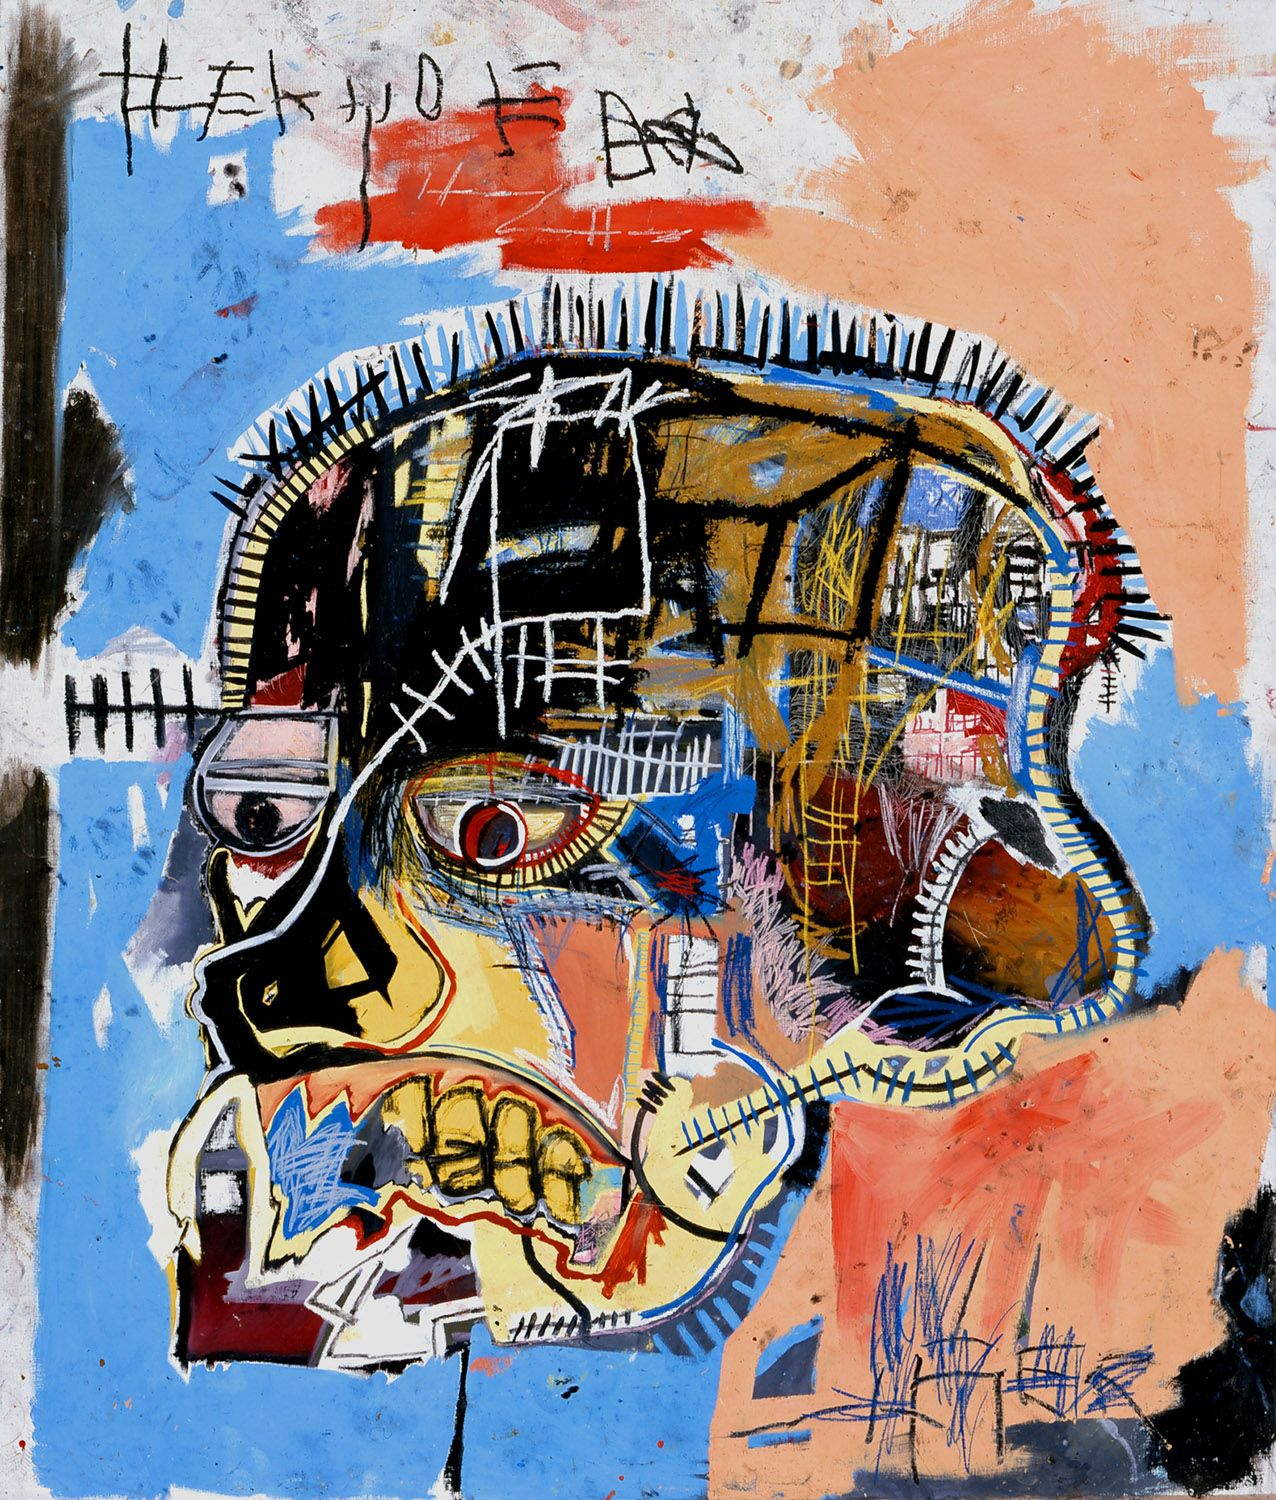 Jean-michel basquiat bisexual